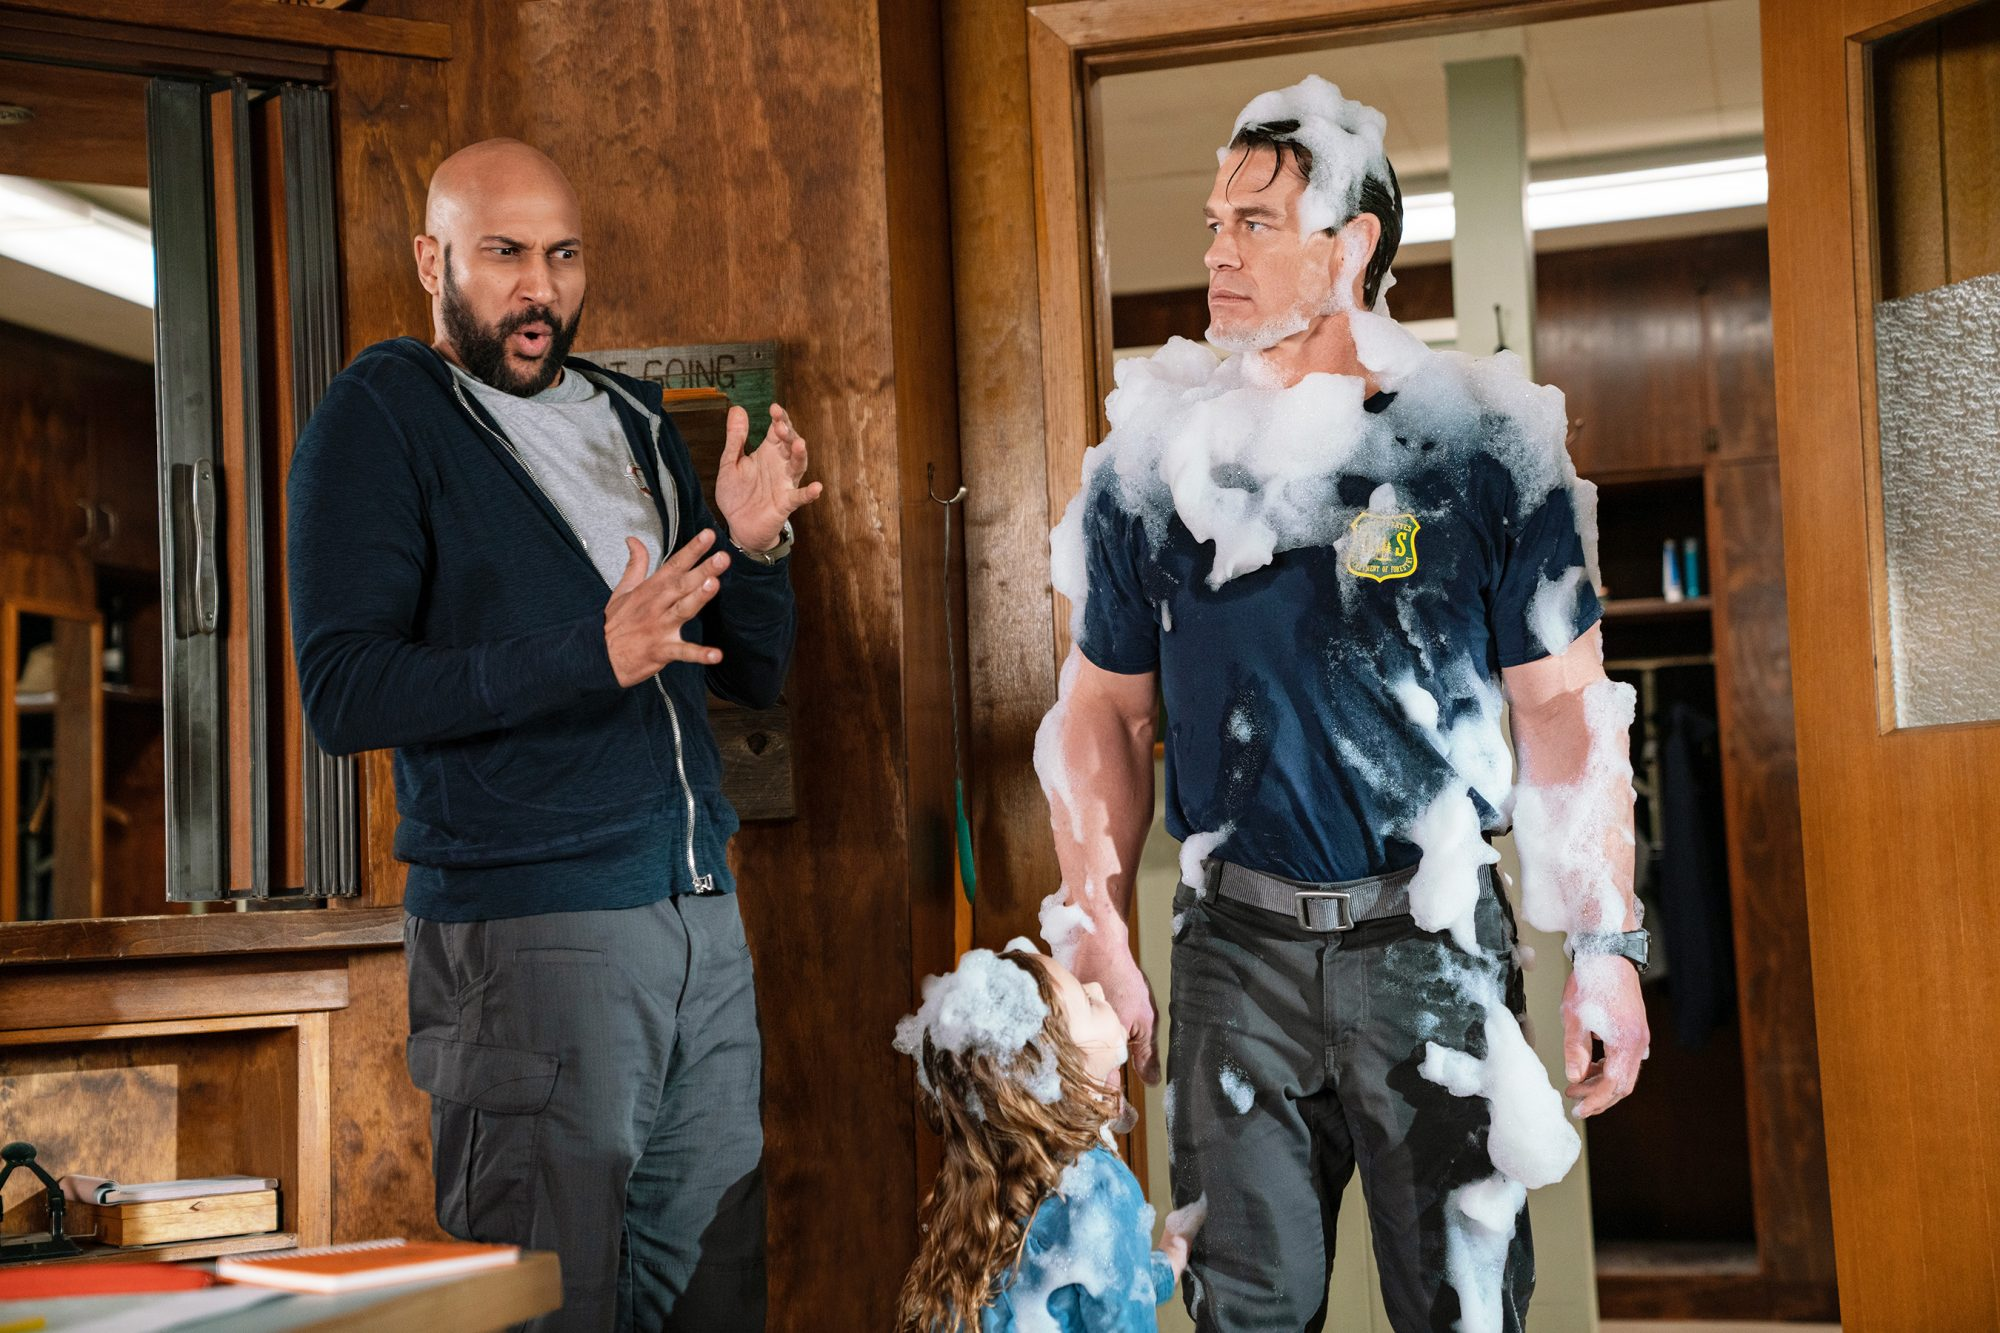 L-R: Keegan-Michael Key, Finley Rose Slater, and John Cena in PLAYING WITH FIRE from Paramount Pictures. Photo Credit: Doane Gregory.